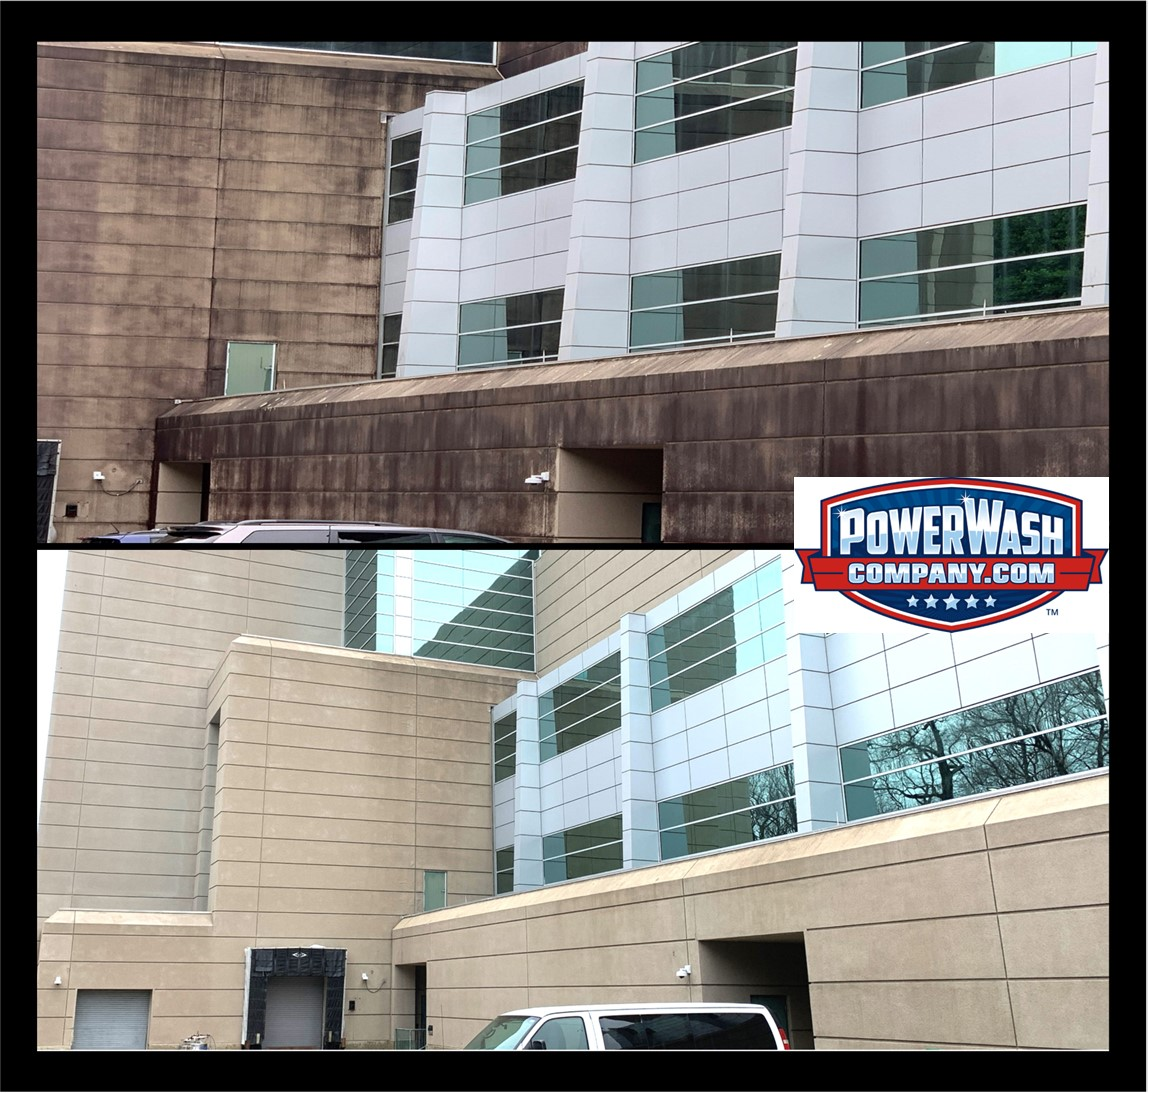 Army Labratory EIFS Exterior Building Cleaning and Power Washing Services